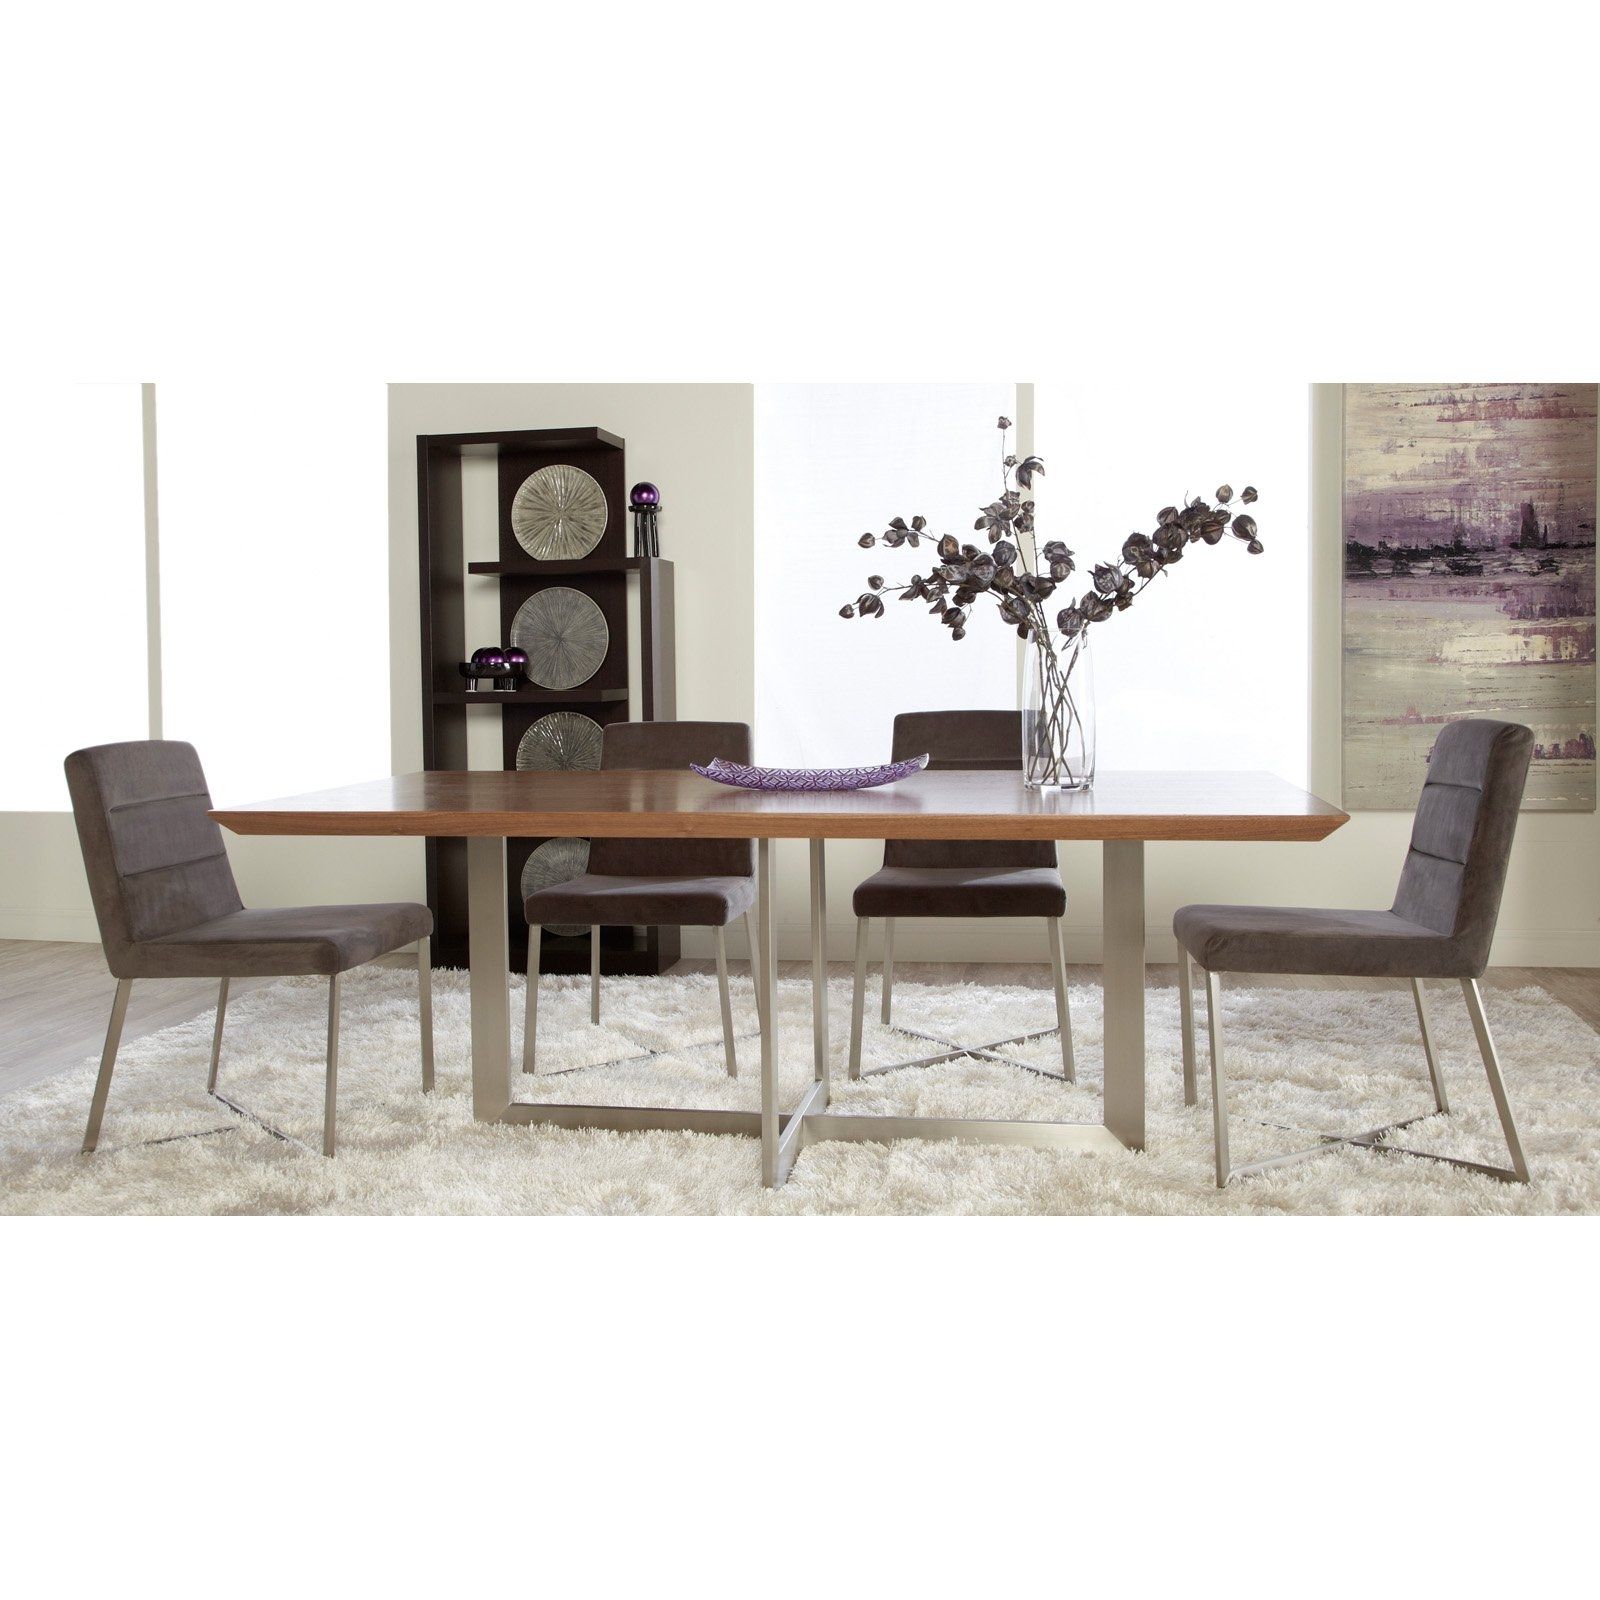 Famous Walnut Dining Tables And Chairs Regarding Euro Style Tosca 5 Piece Walnut Dining Table Set – Tosca Grey Chairs (View 22 of 25)